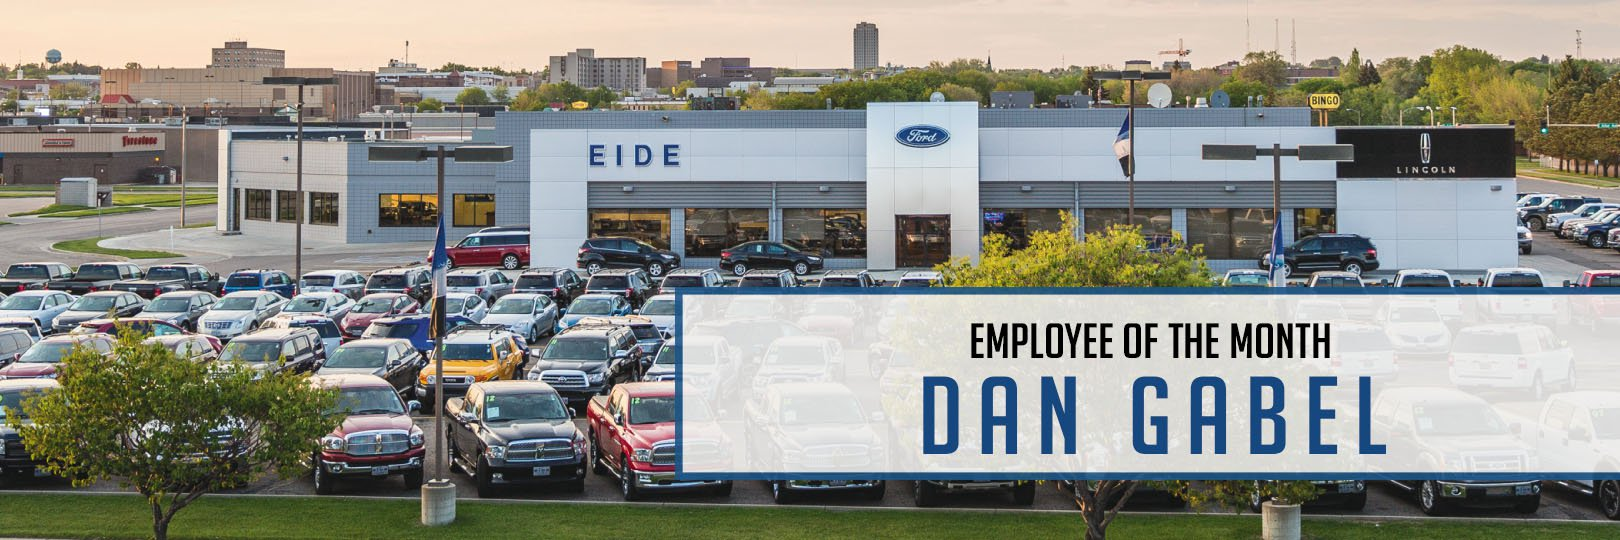 Employee of the Month Dan Gabel Eide Ford